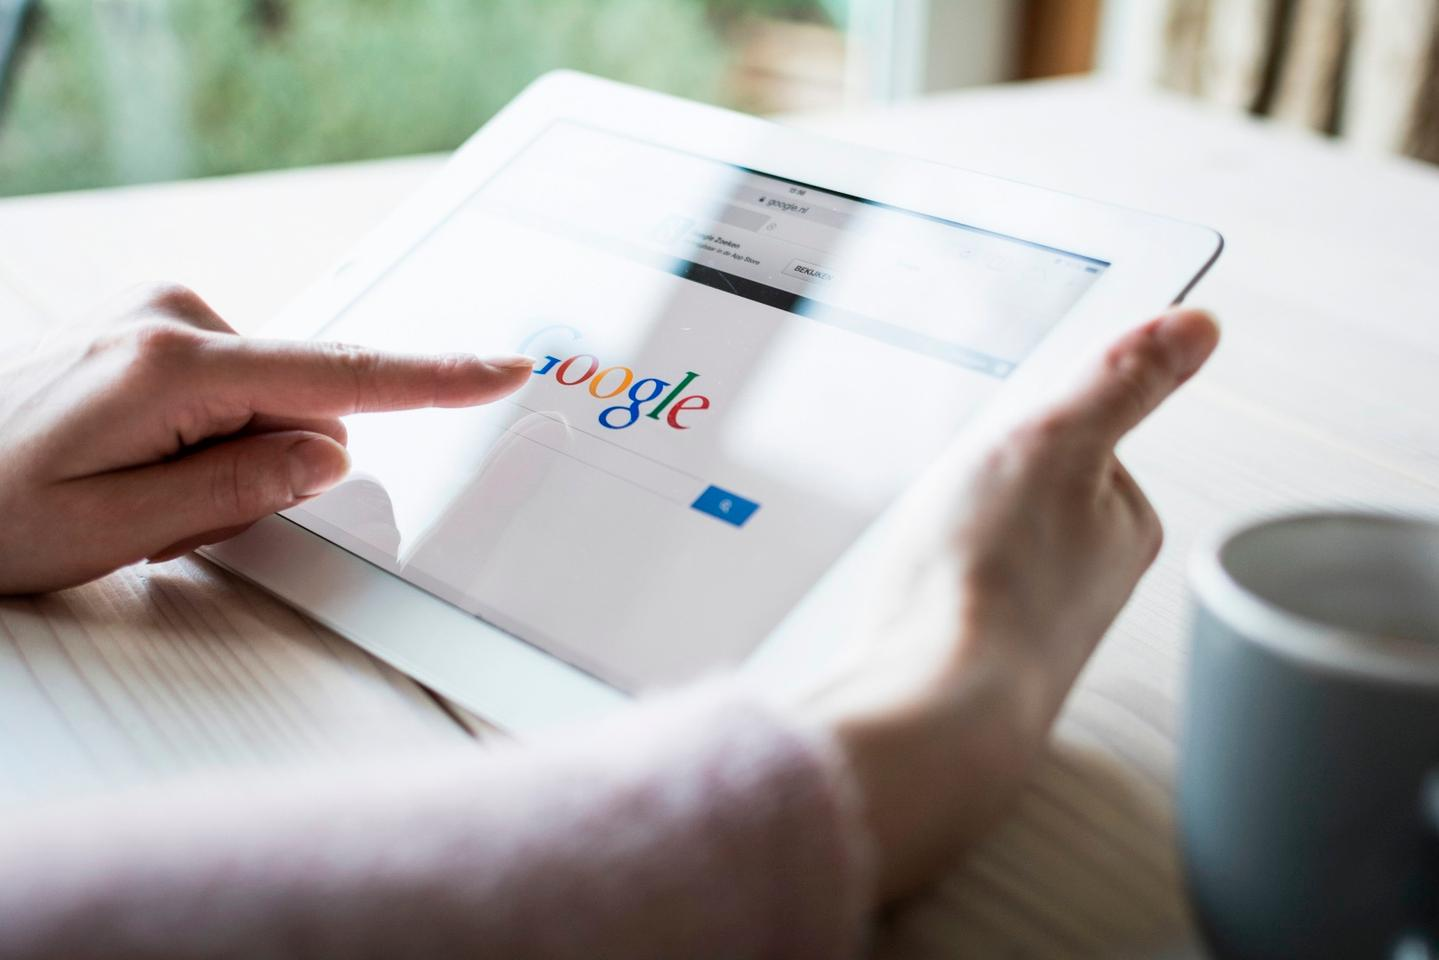 More and more people are using Google as a way of checking on their health